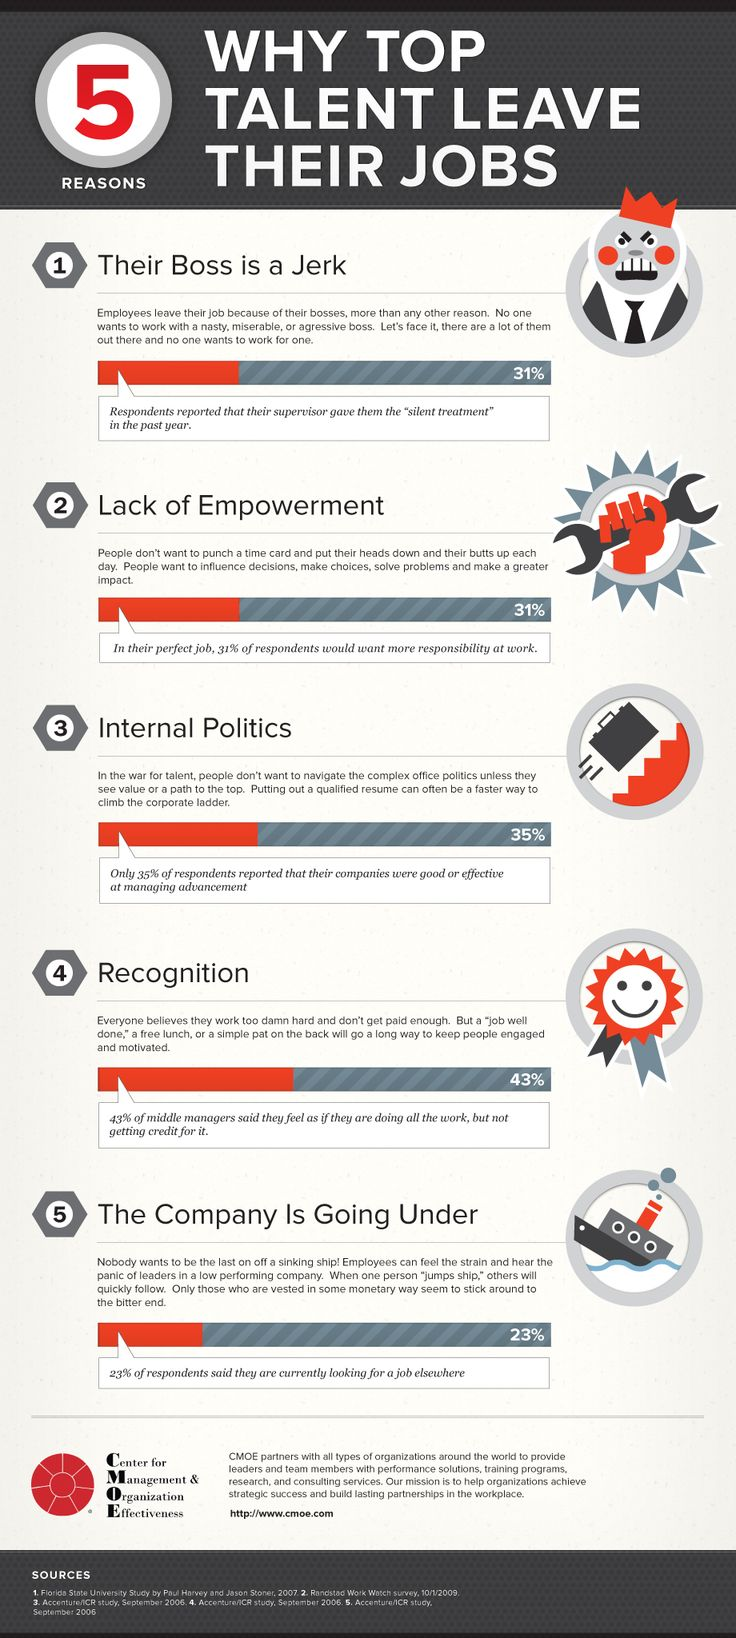 Why top talent leave their jobs?